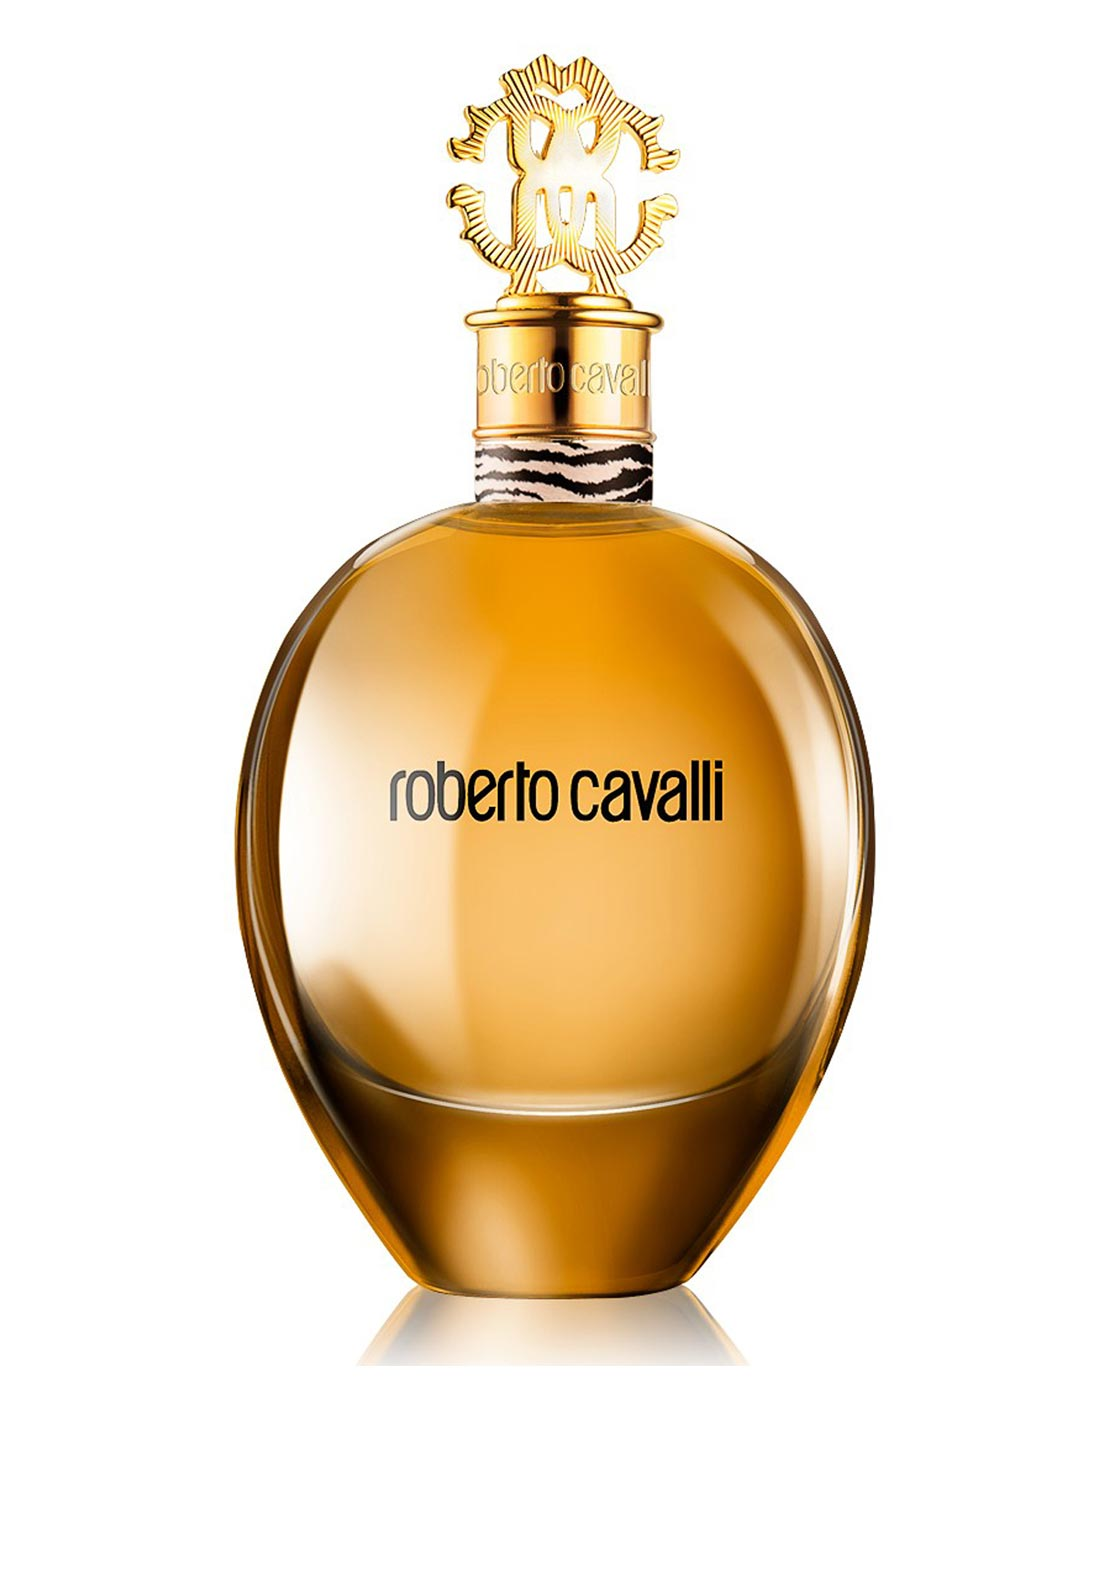 Roberto Cavalli Eau De Parfum Natural Spray, 75ml